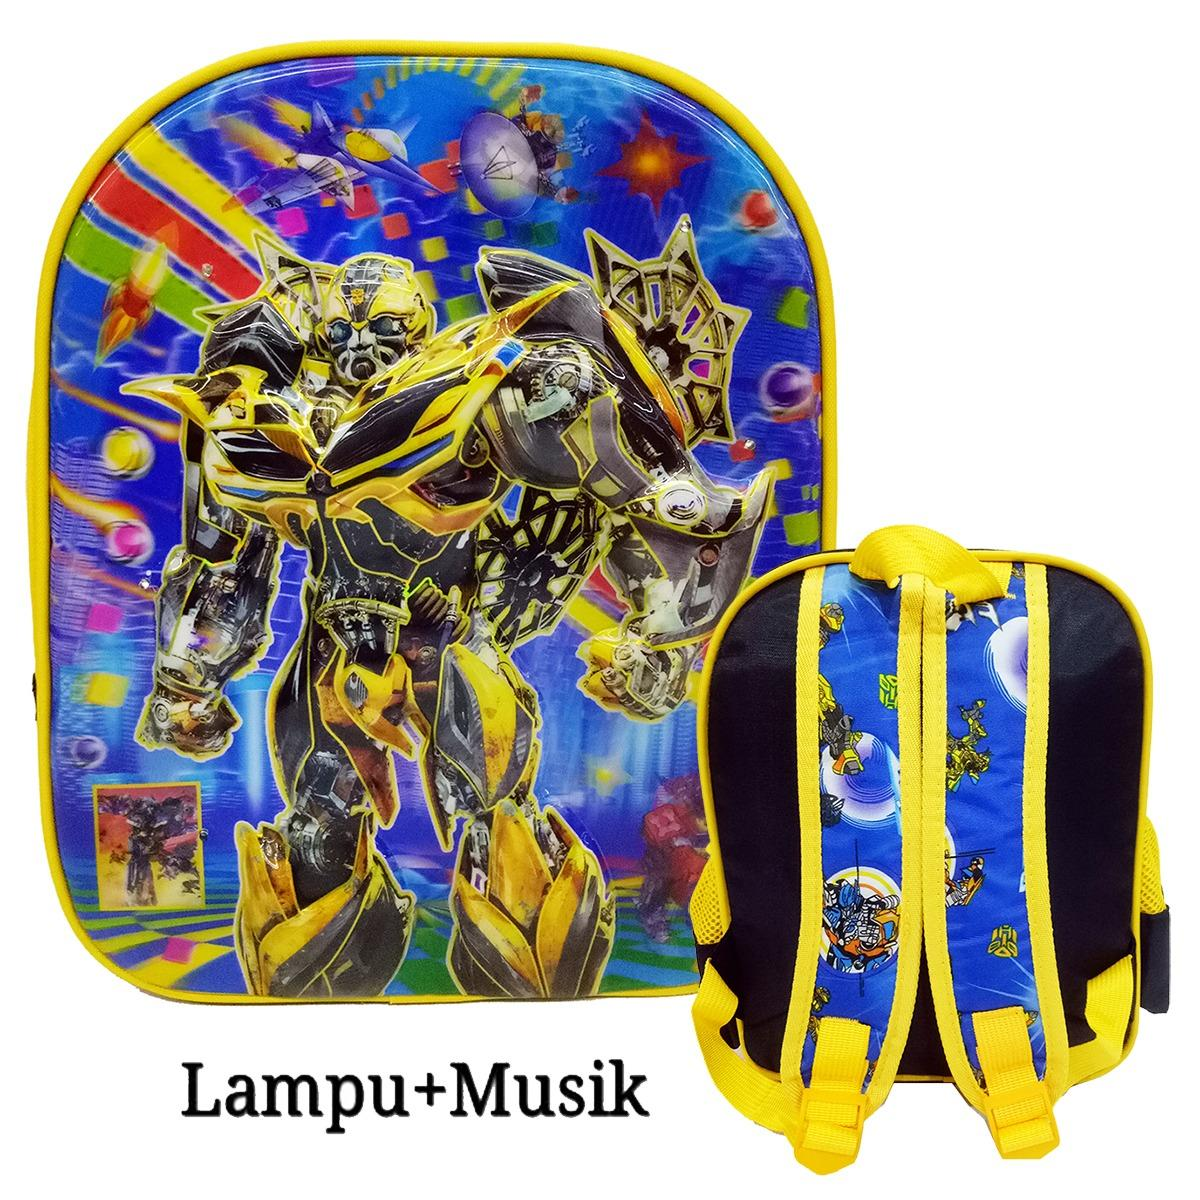 Jual Onlan Transformers 5D Lampu Timbul Hologram Anti Gorestas Ransel Anak Sekolah Tk Play Group Import Blue Murah